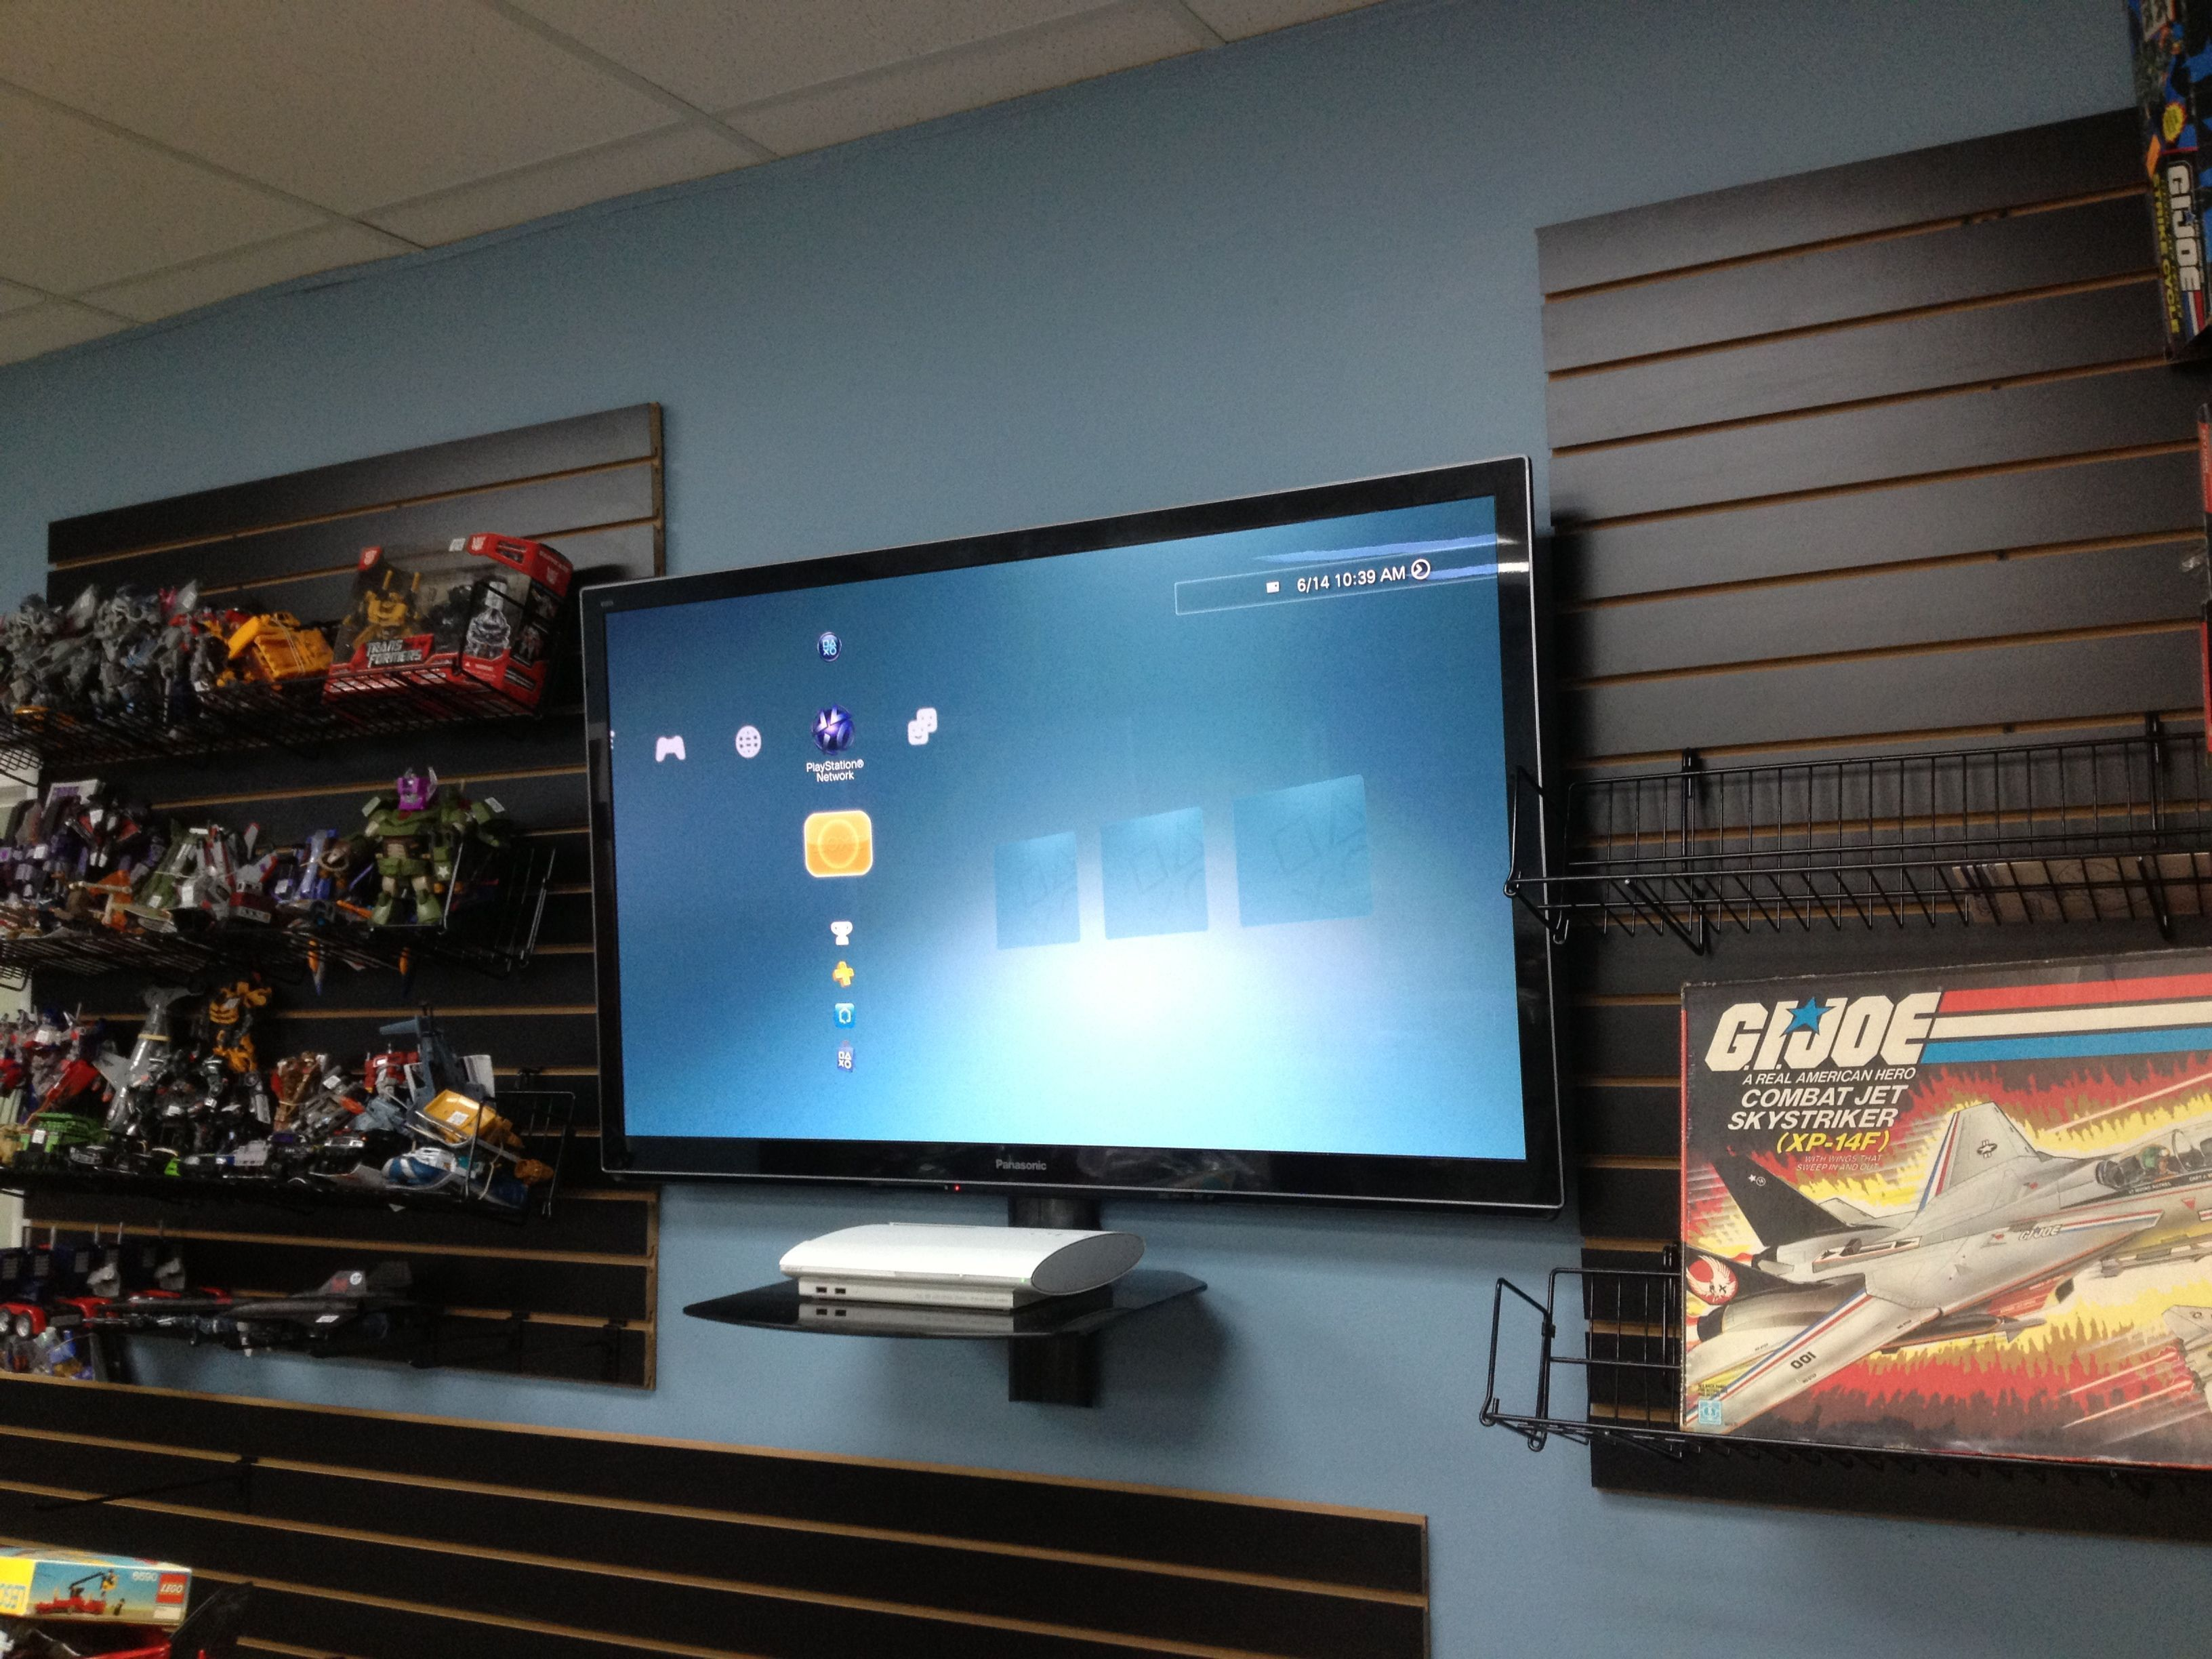 Charlotte Home Theater installation and TV wall mounting pictures by ...